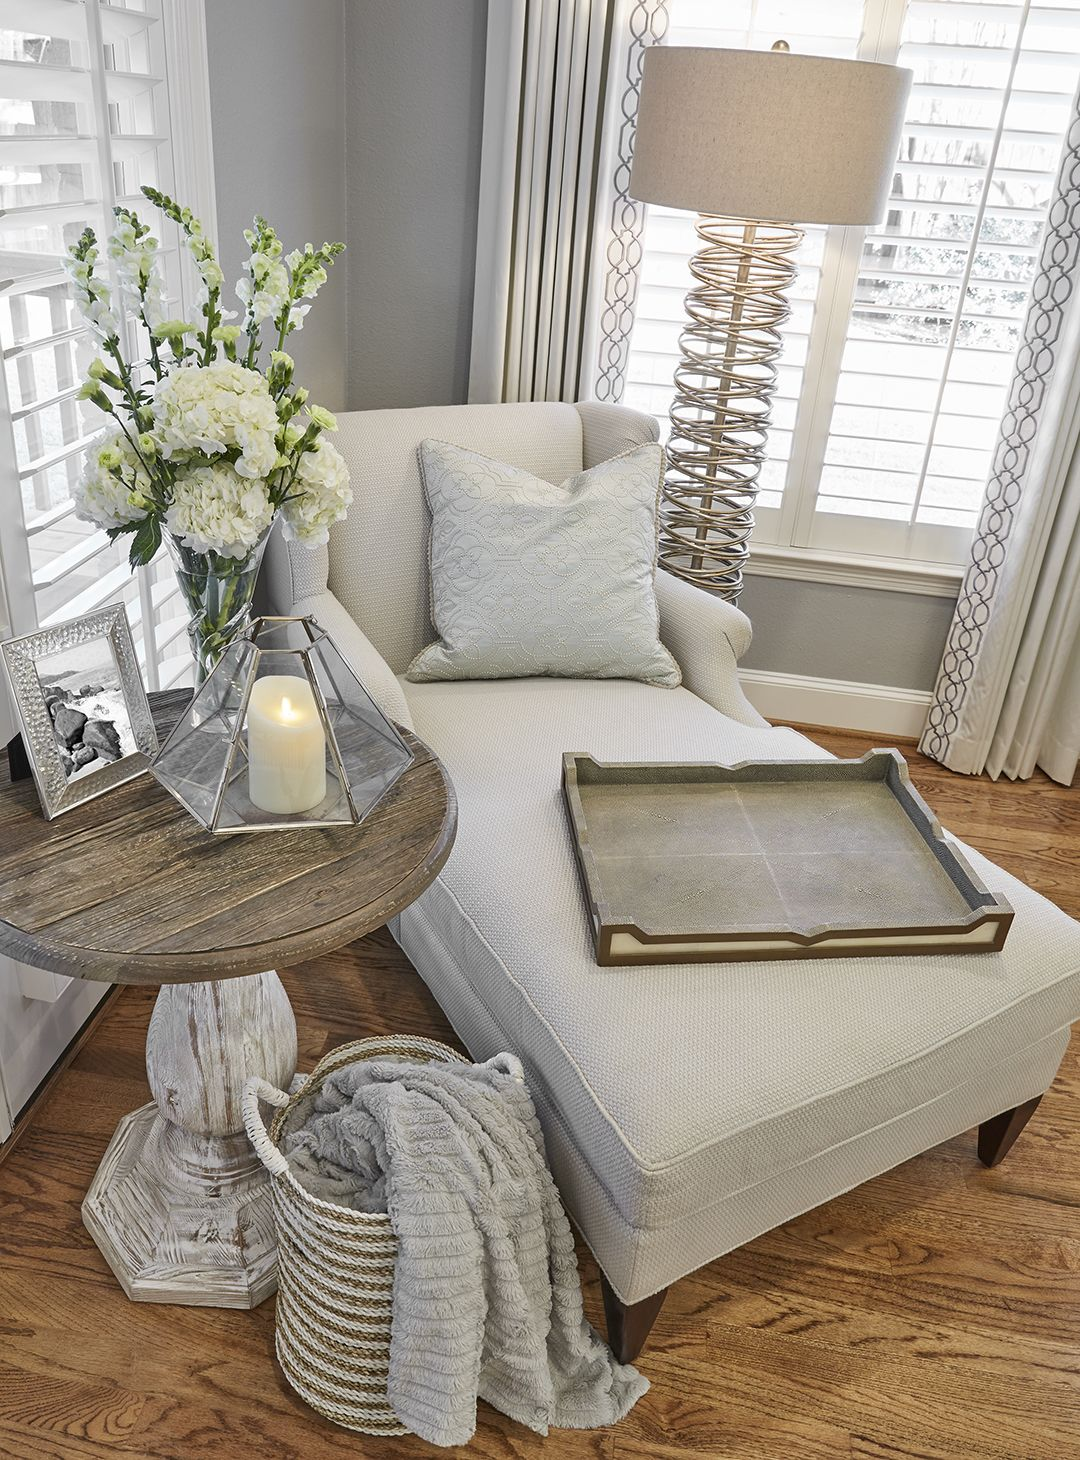 Best Tipps Project Master Bedroom With Seating Area By A Well 400 x 300